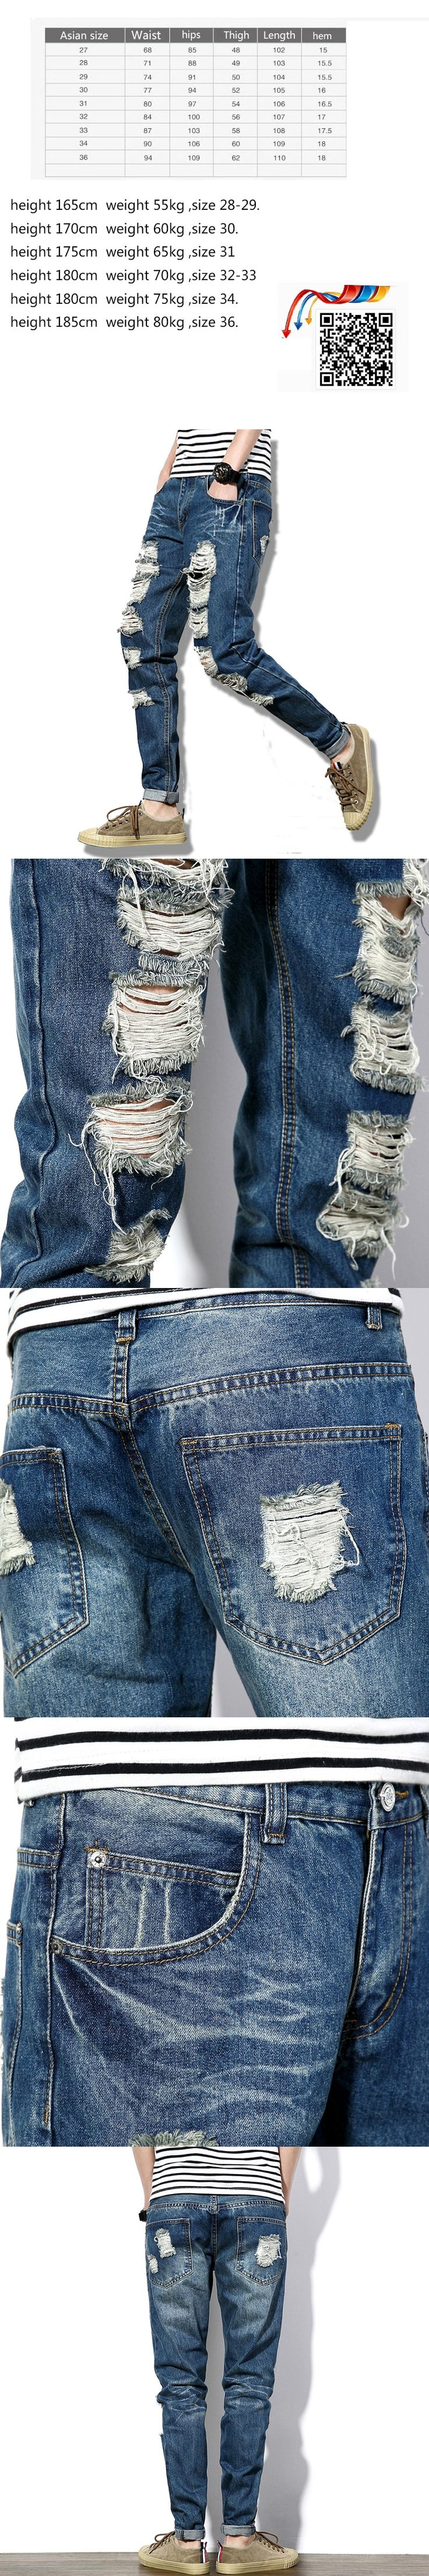 2017 Fashion Hi-Street Mens Destroyed Jeans With Zippers Ripped Hip Hop Jeans With Holes On the Knee Distressed Denim Joggers